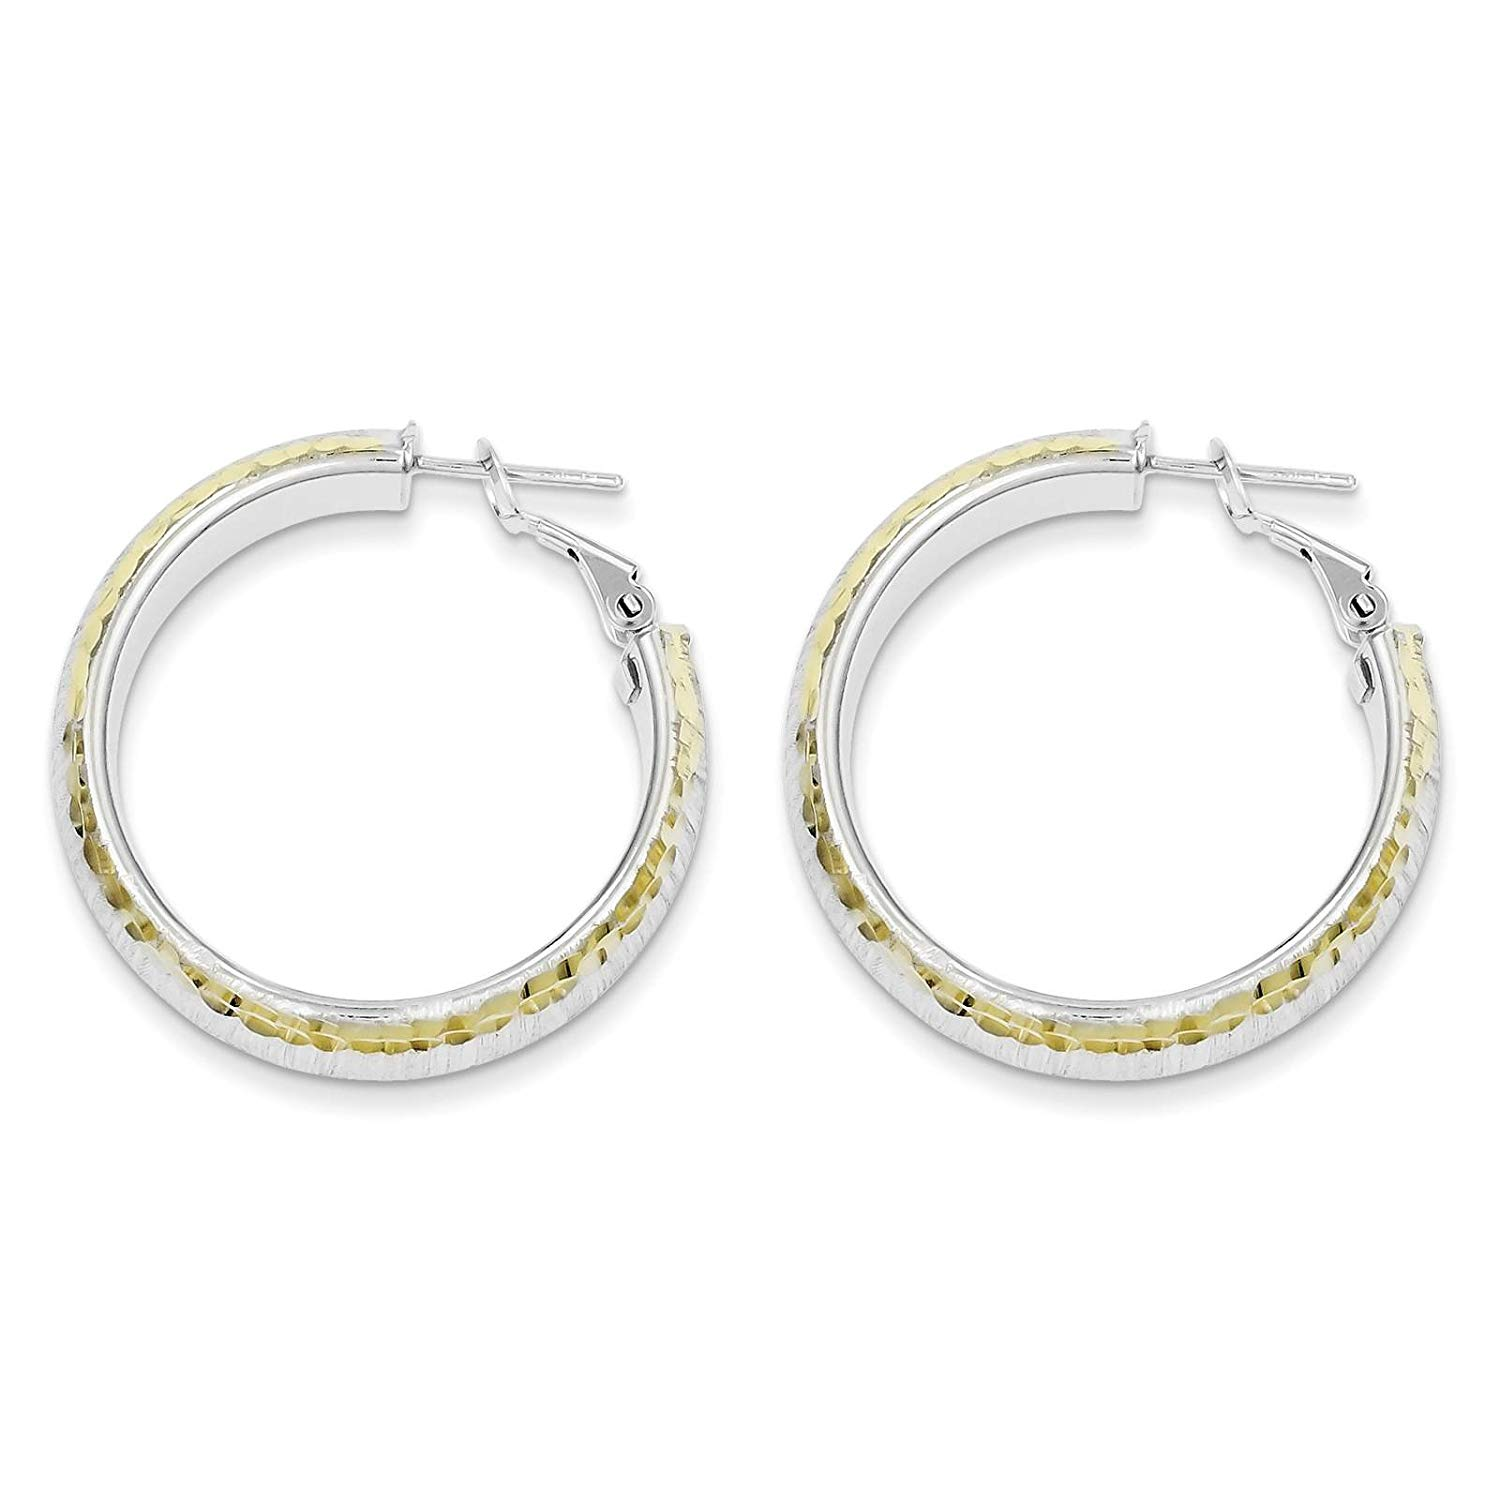 .925 Sterling Silver w/Gold-tone Brushed Finish Hoop Earrings 9mm x 32mm